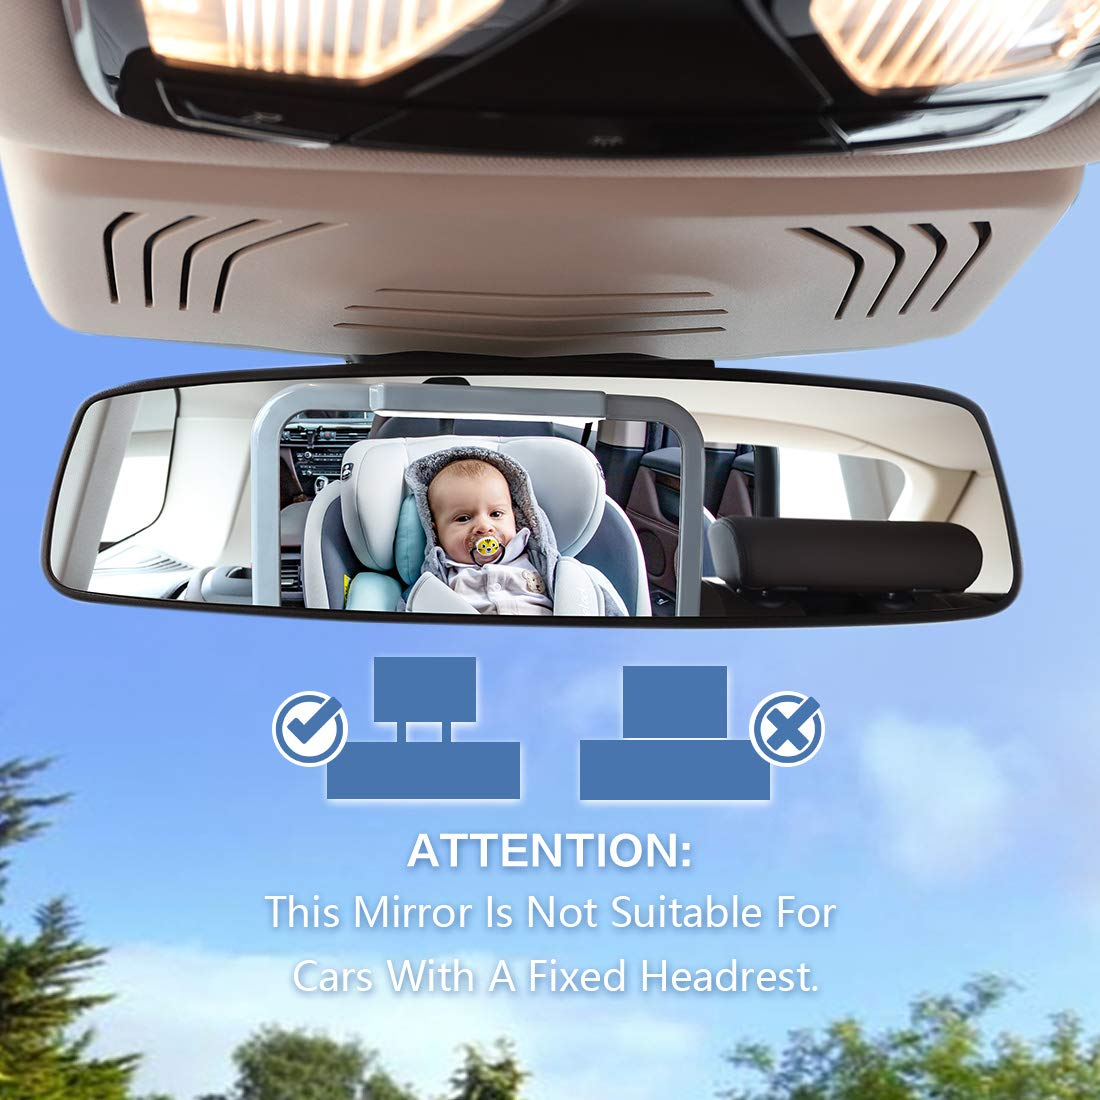 Innokids Dual Mode LED Lighting by Remote Control Black Baby Car Mirror with Light Clear View of Infant in Rear Facing Back Seat While Night Driving